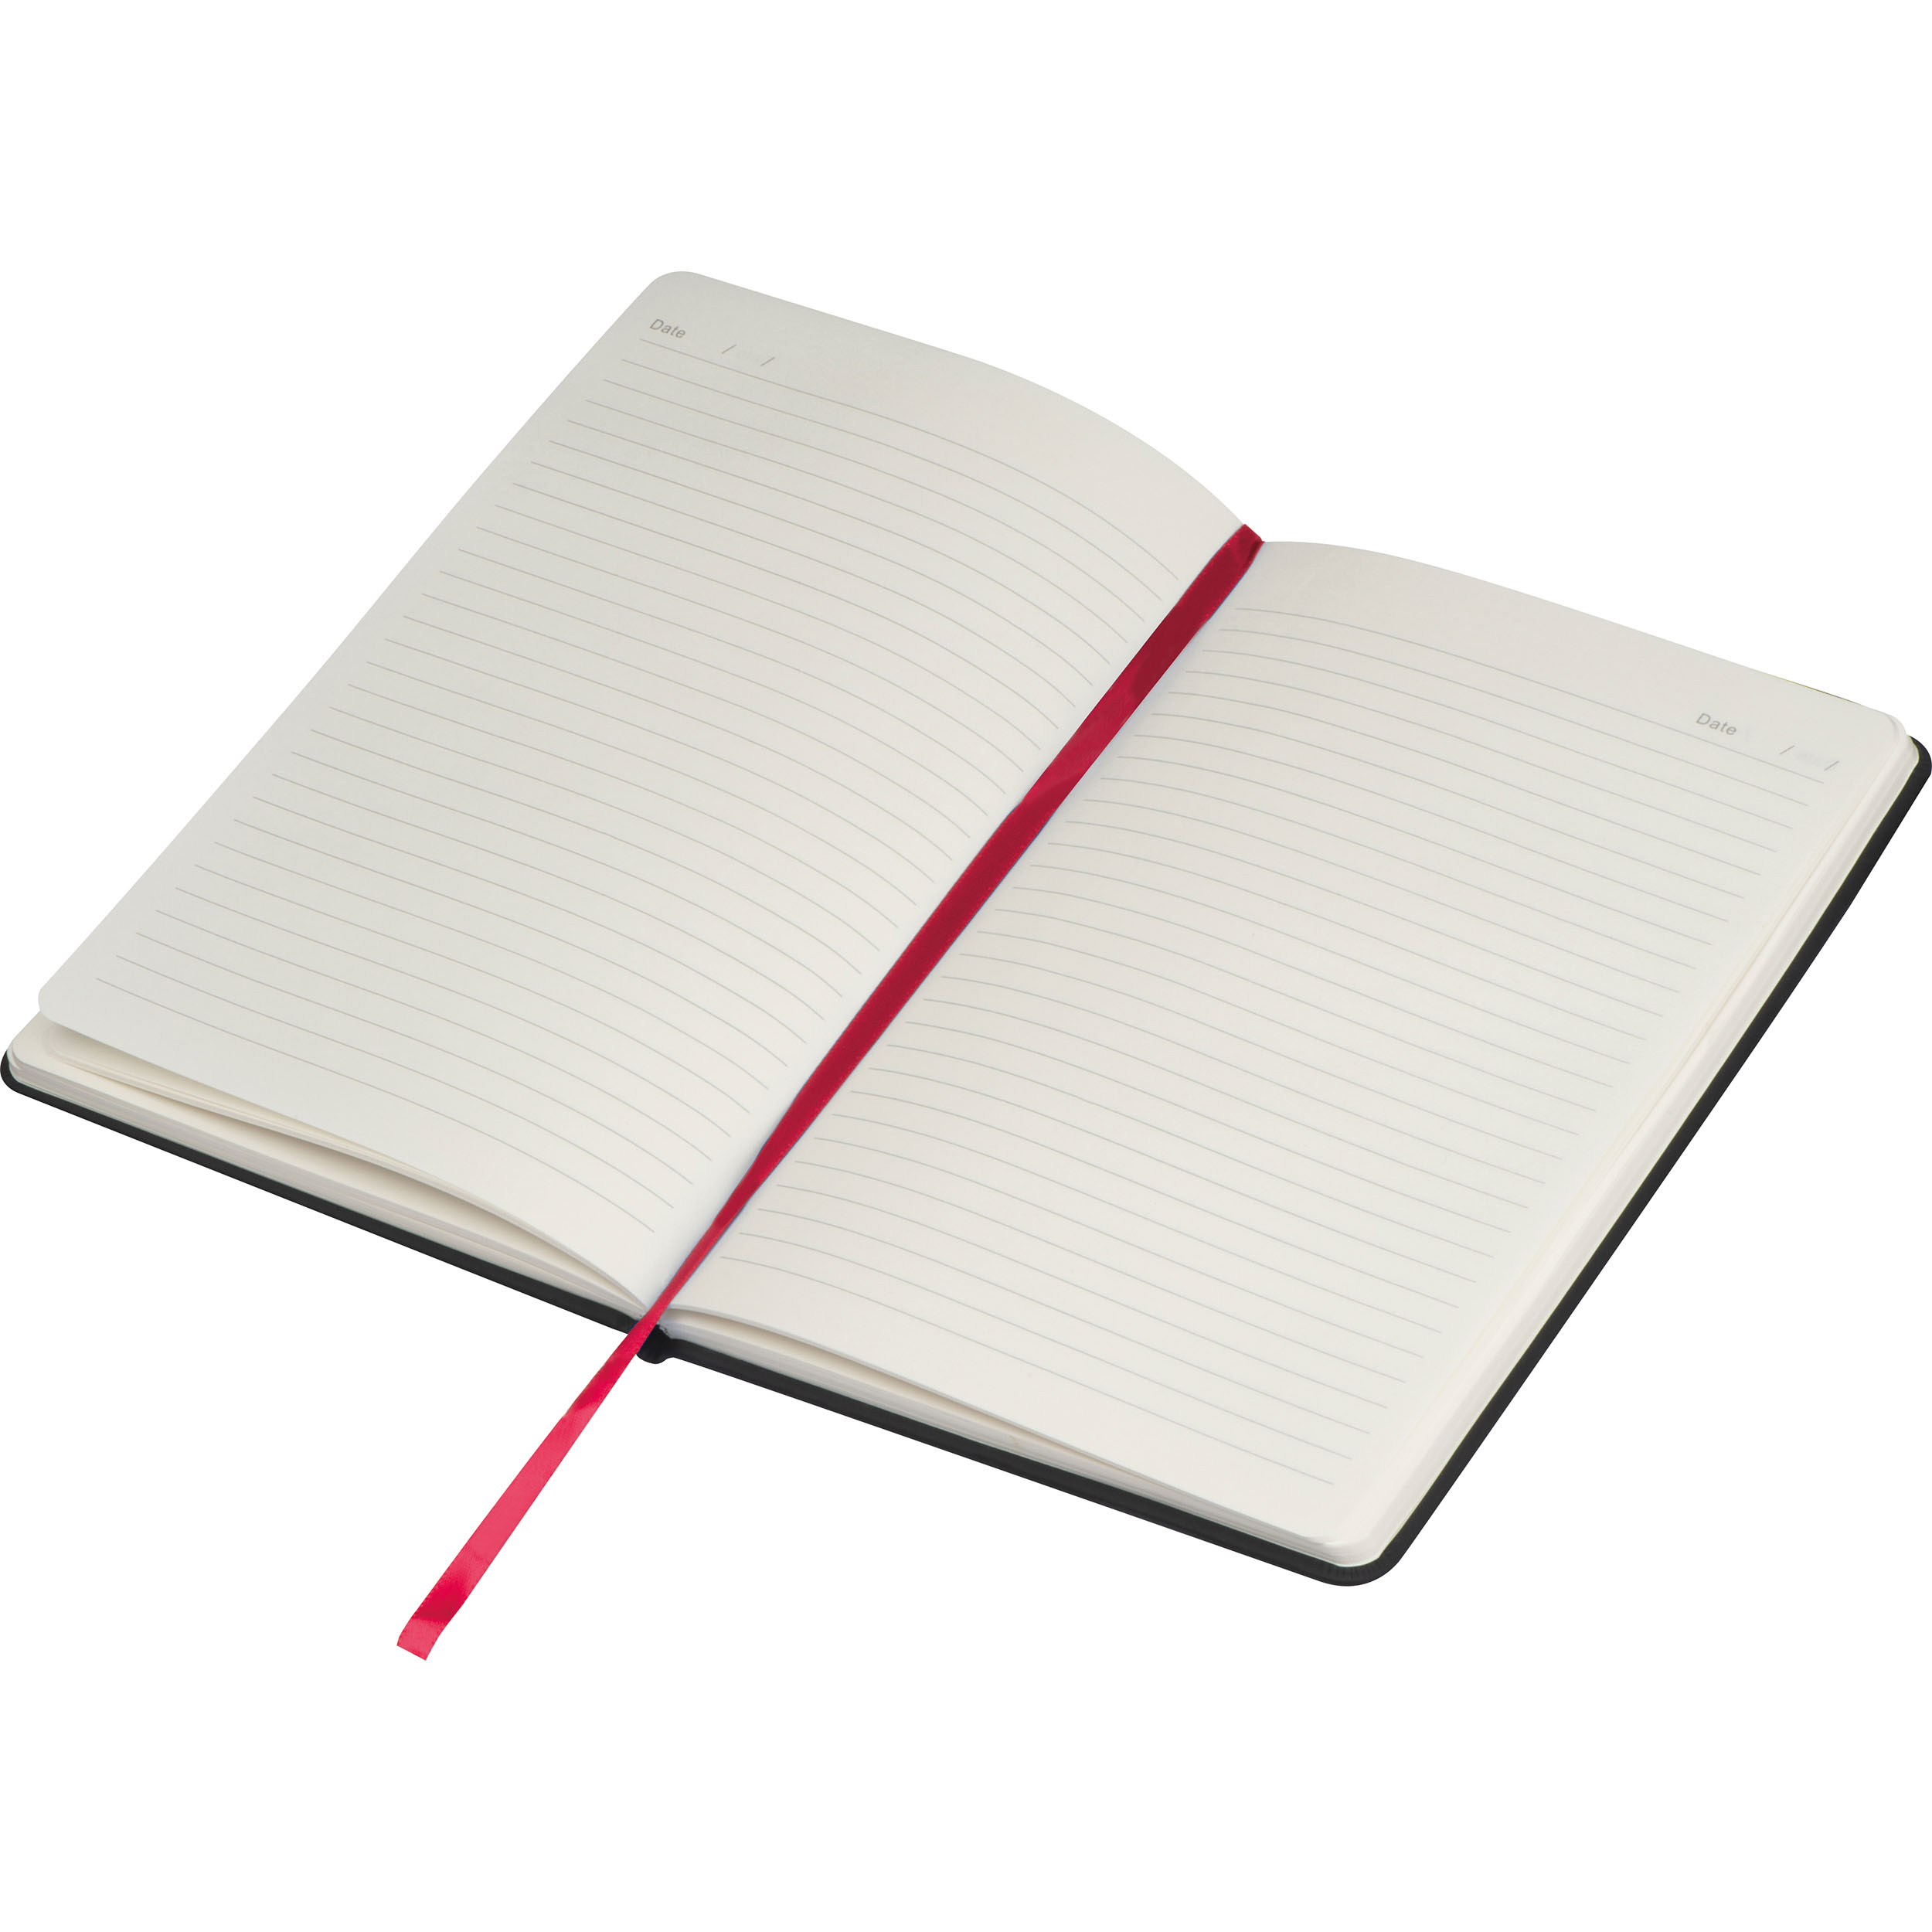 A5 Notebook with PU-Cover